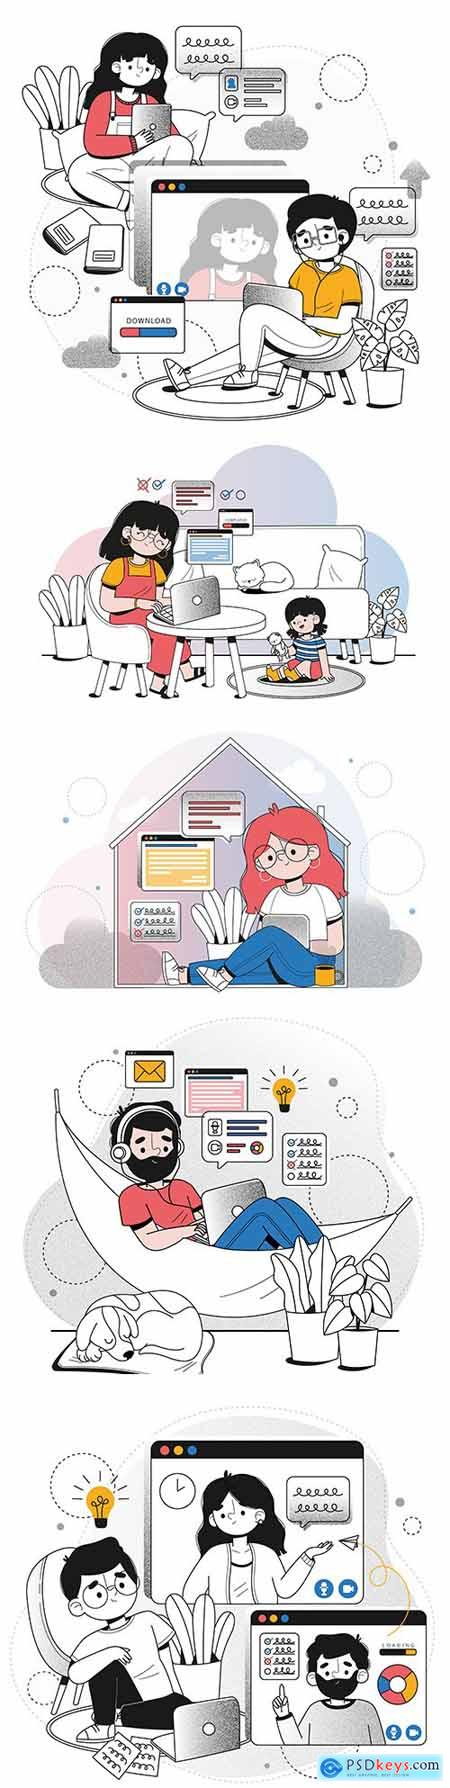 Remote work at home concept of illustration